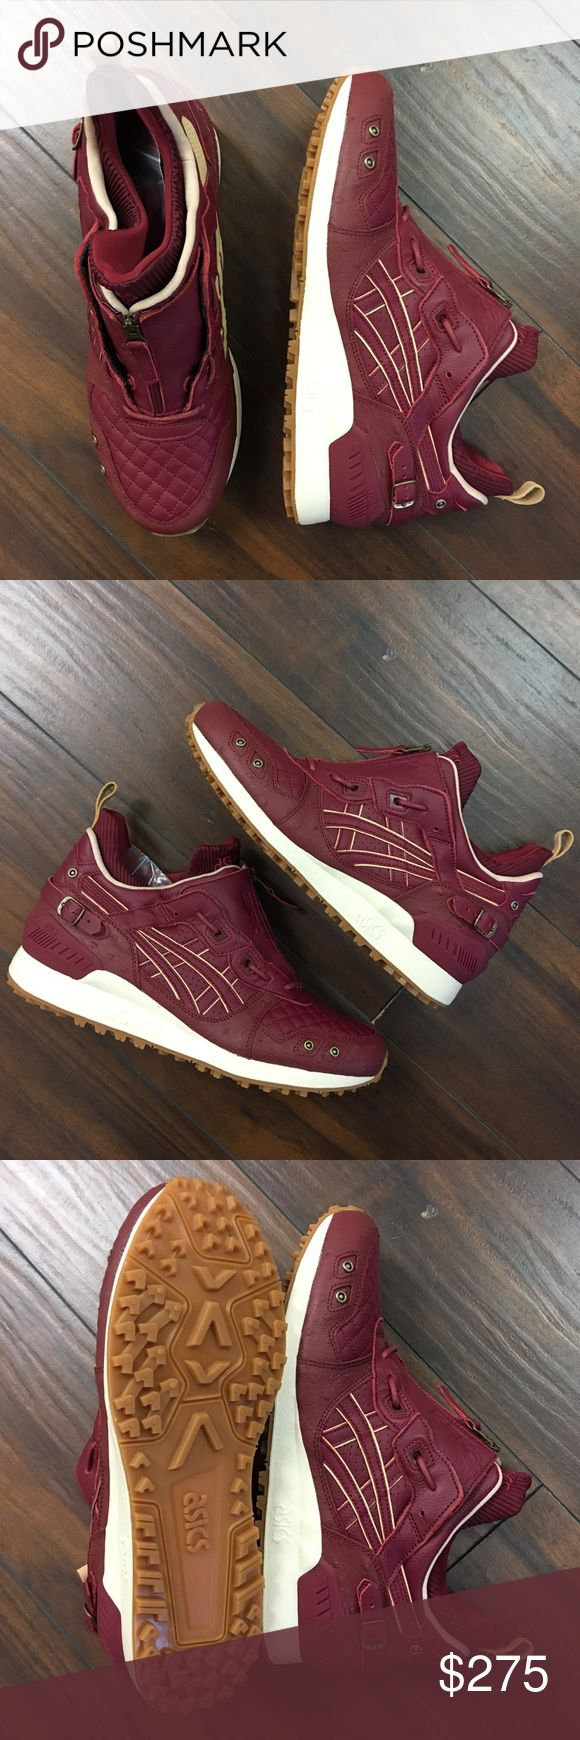 """Asics Gel Lyte MT Ghostface Killah Pretty Toney Brand new and never worn   Comes with OG everything including extra laces  Picked up at ComplexCon  Commemorates Ghostface Killah's album """"Pretty Toney"""" The legendary member of the Wu-Tang clan used a classic burgundy and gum colorway that's just in time for Autumn and winter Asics Shoes Sneakers"""